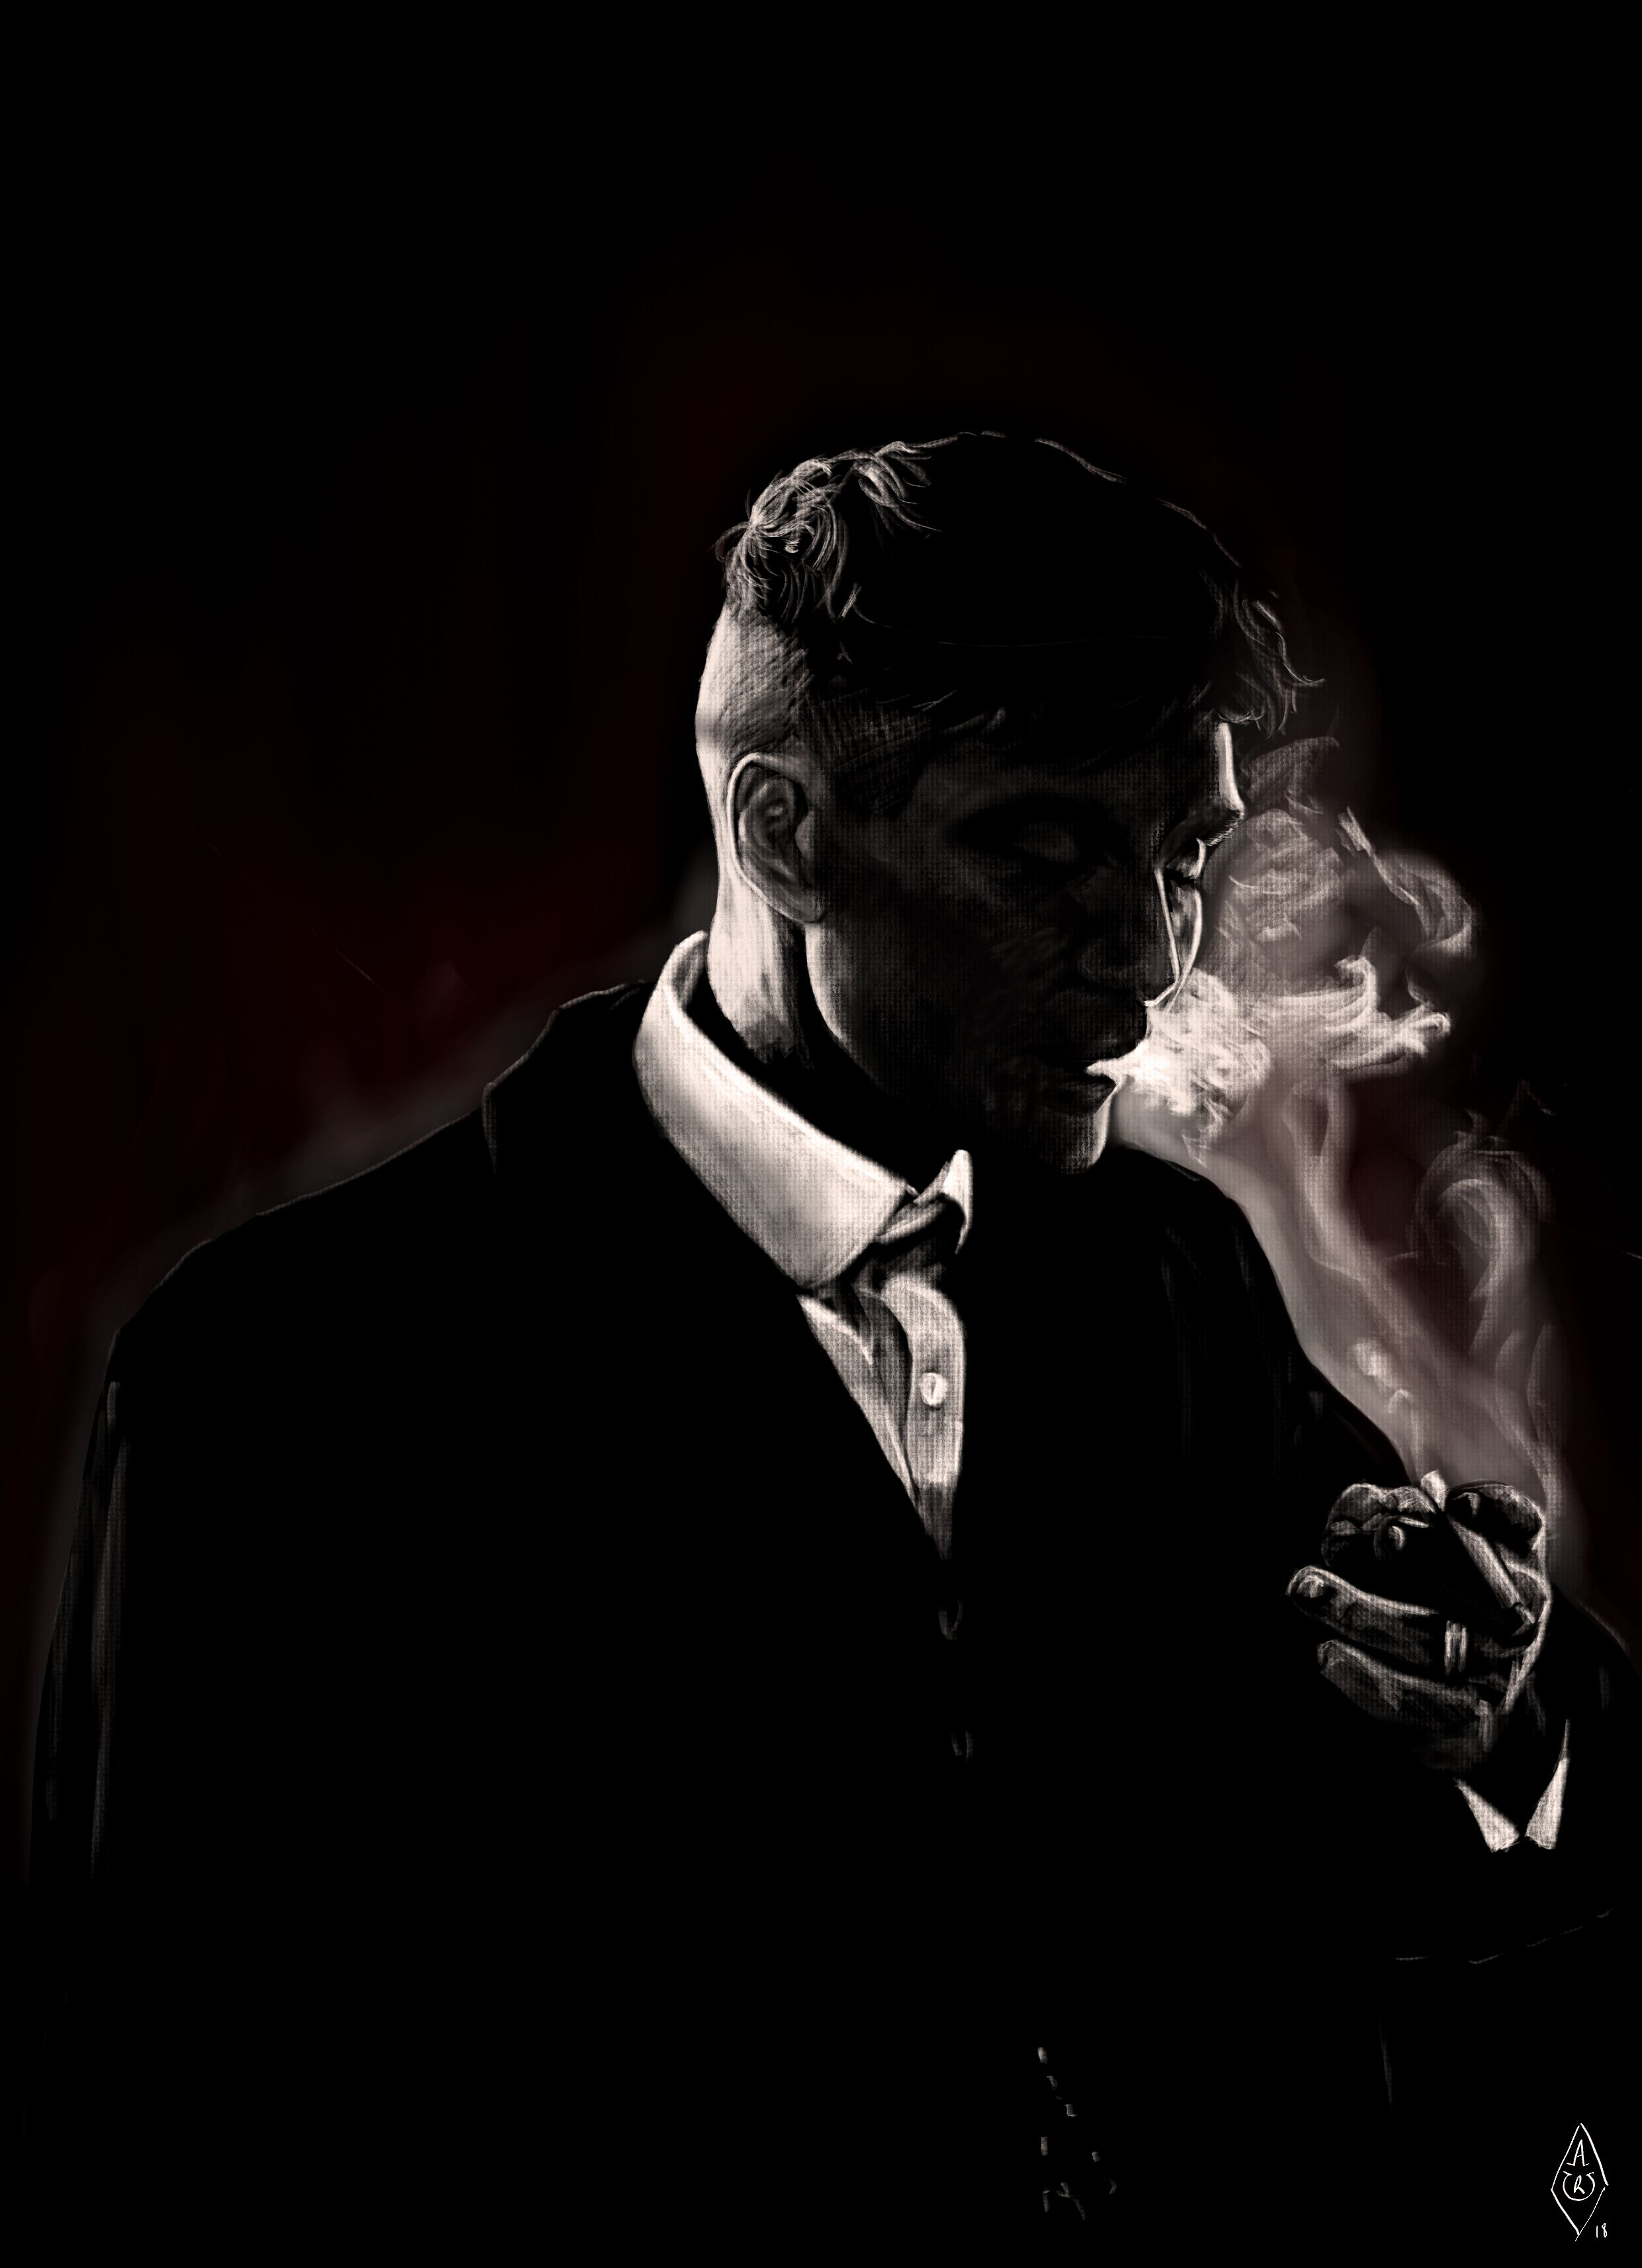 Thomas Shelby Wallpapers Top Free Thomas Shelby Backgrounds